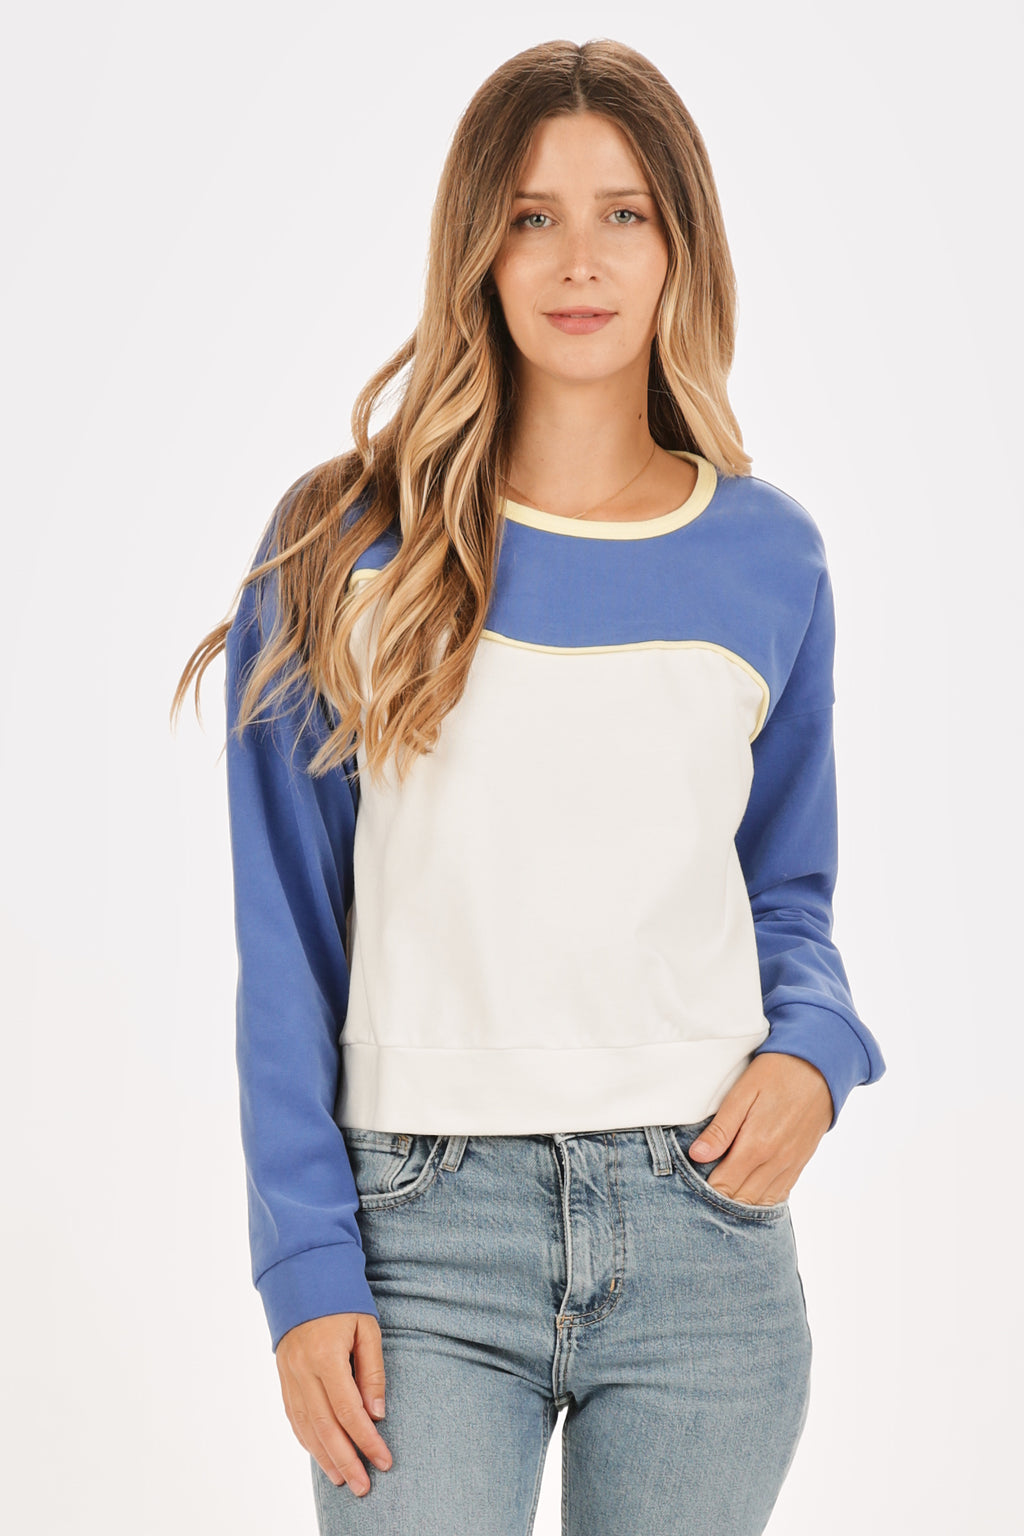 Carnia Colorblocked Sweatshirt